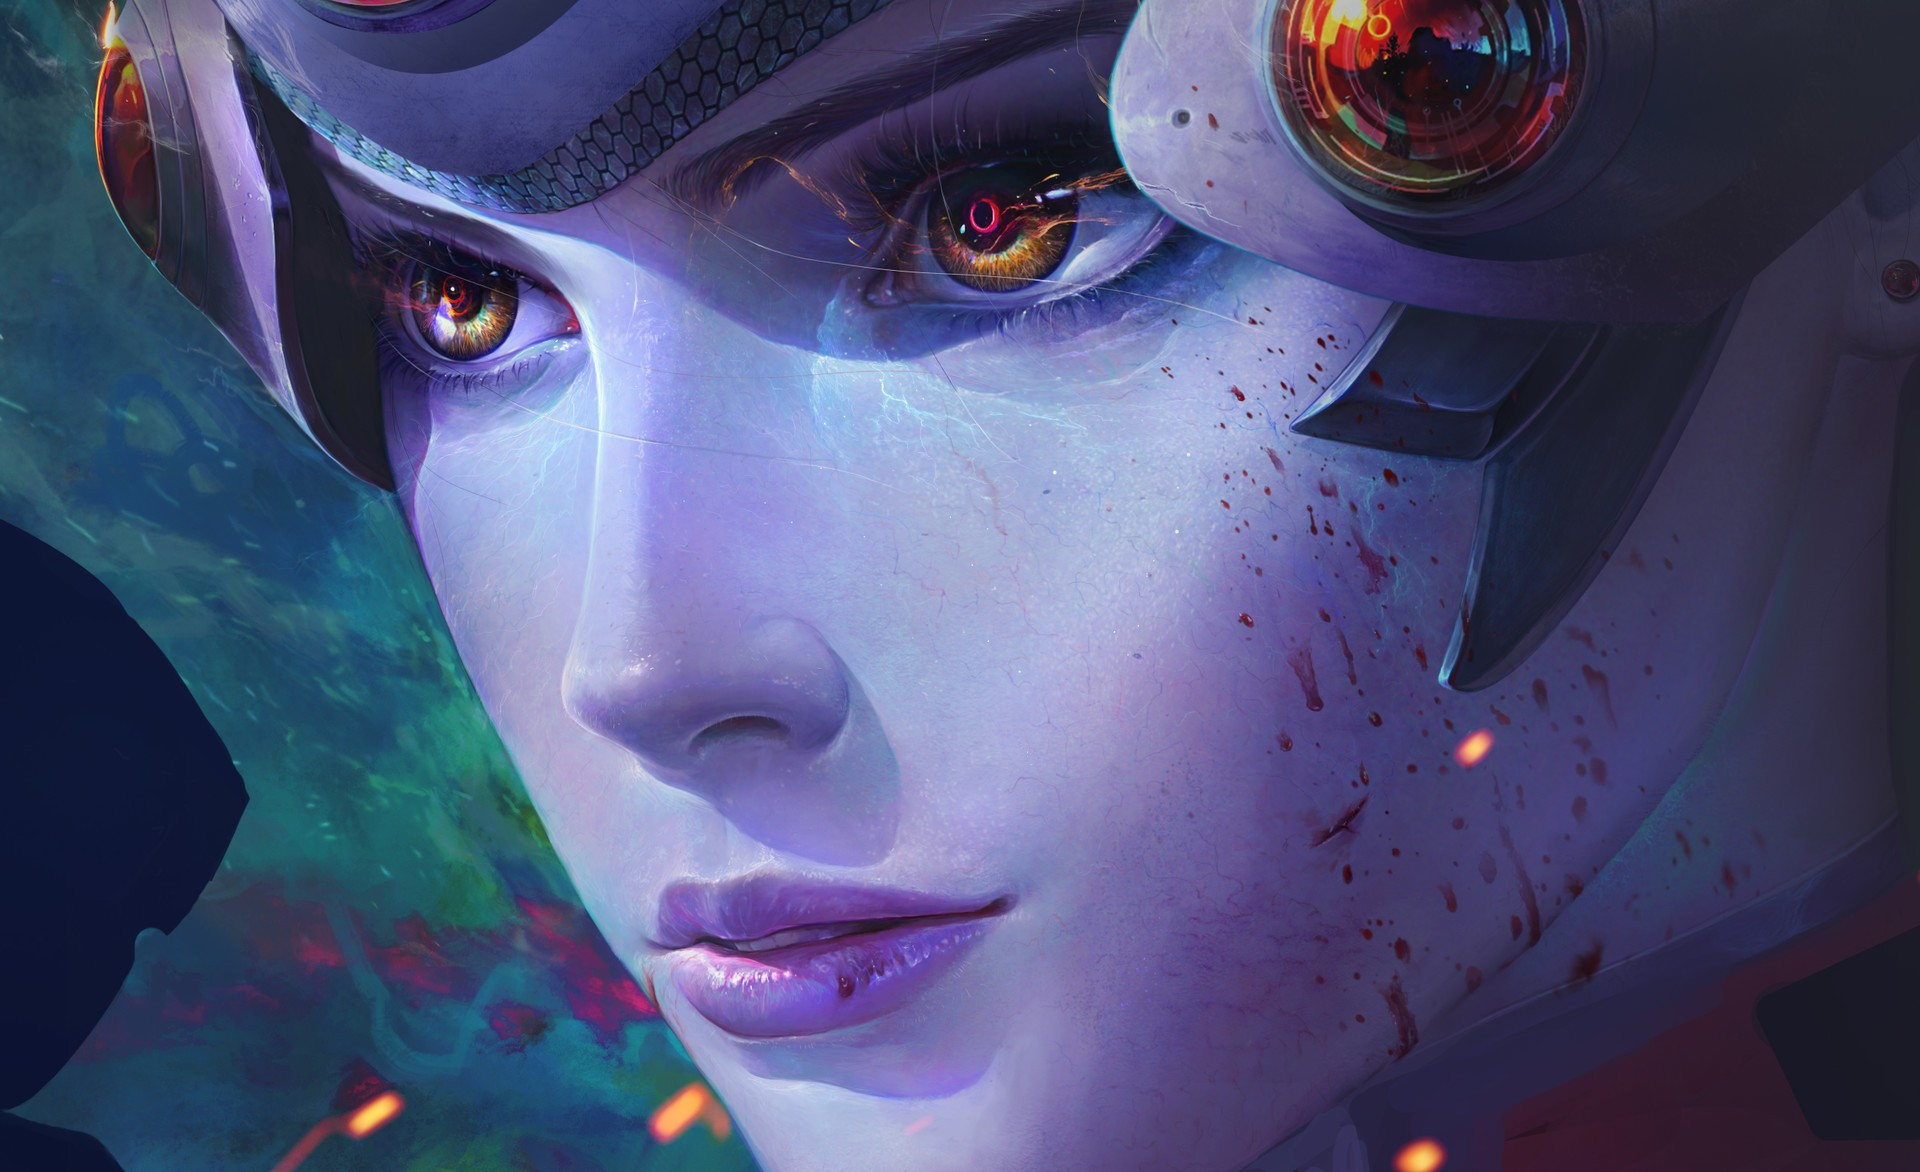 General 1920x1172 Overwatch Widowmaker (Overwatch) JOO YANN ANG